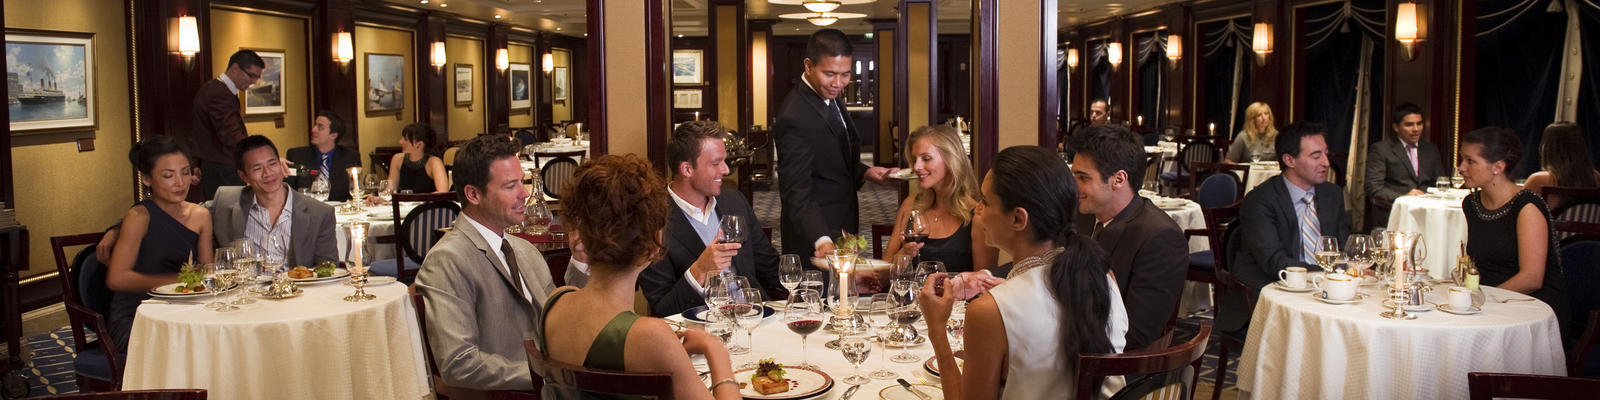 Formally assigned dining isn't always the right fit (Photo: Celebrity Cruises)